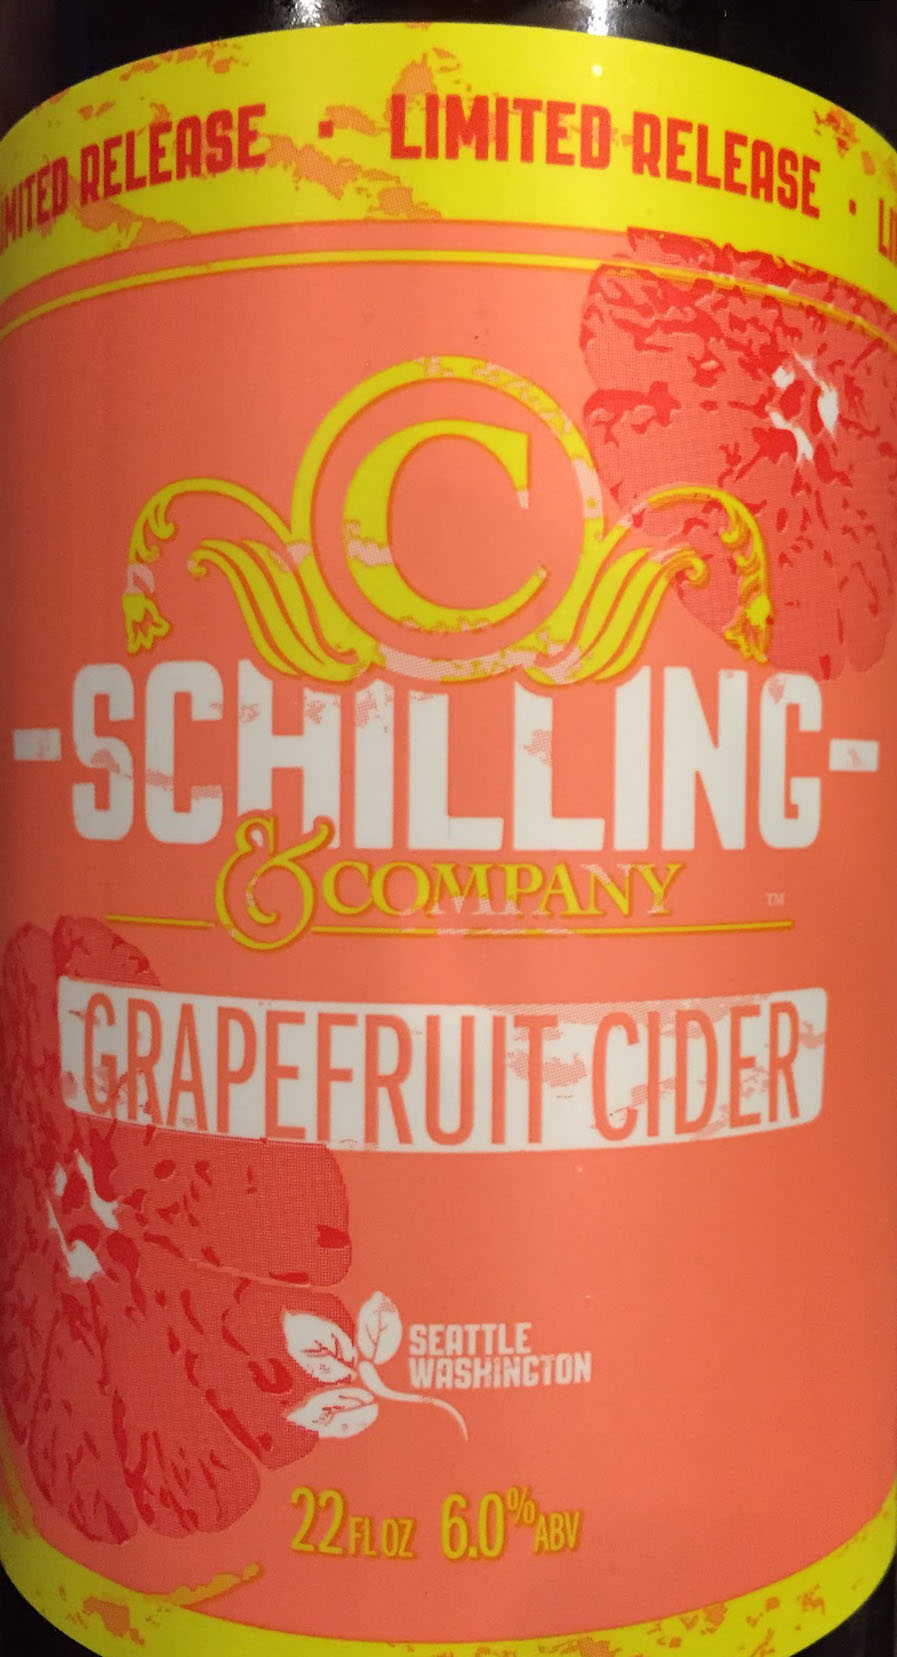 Grapefruit Cider